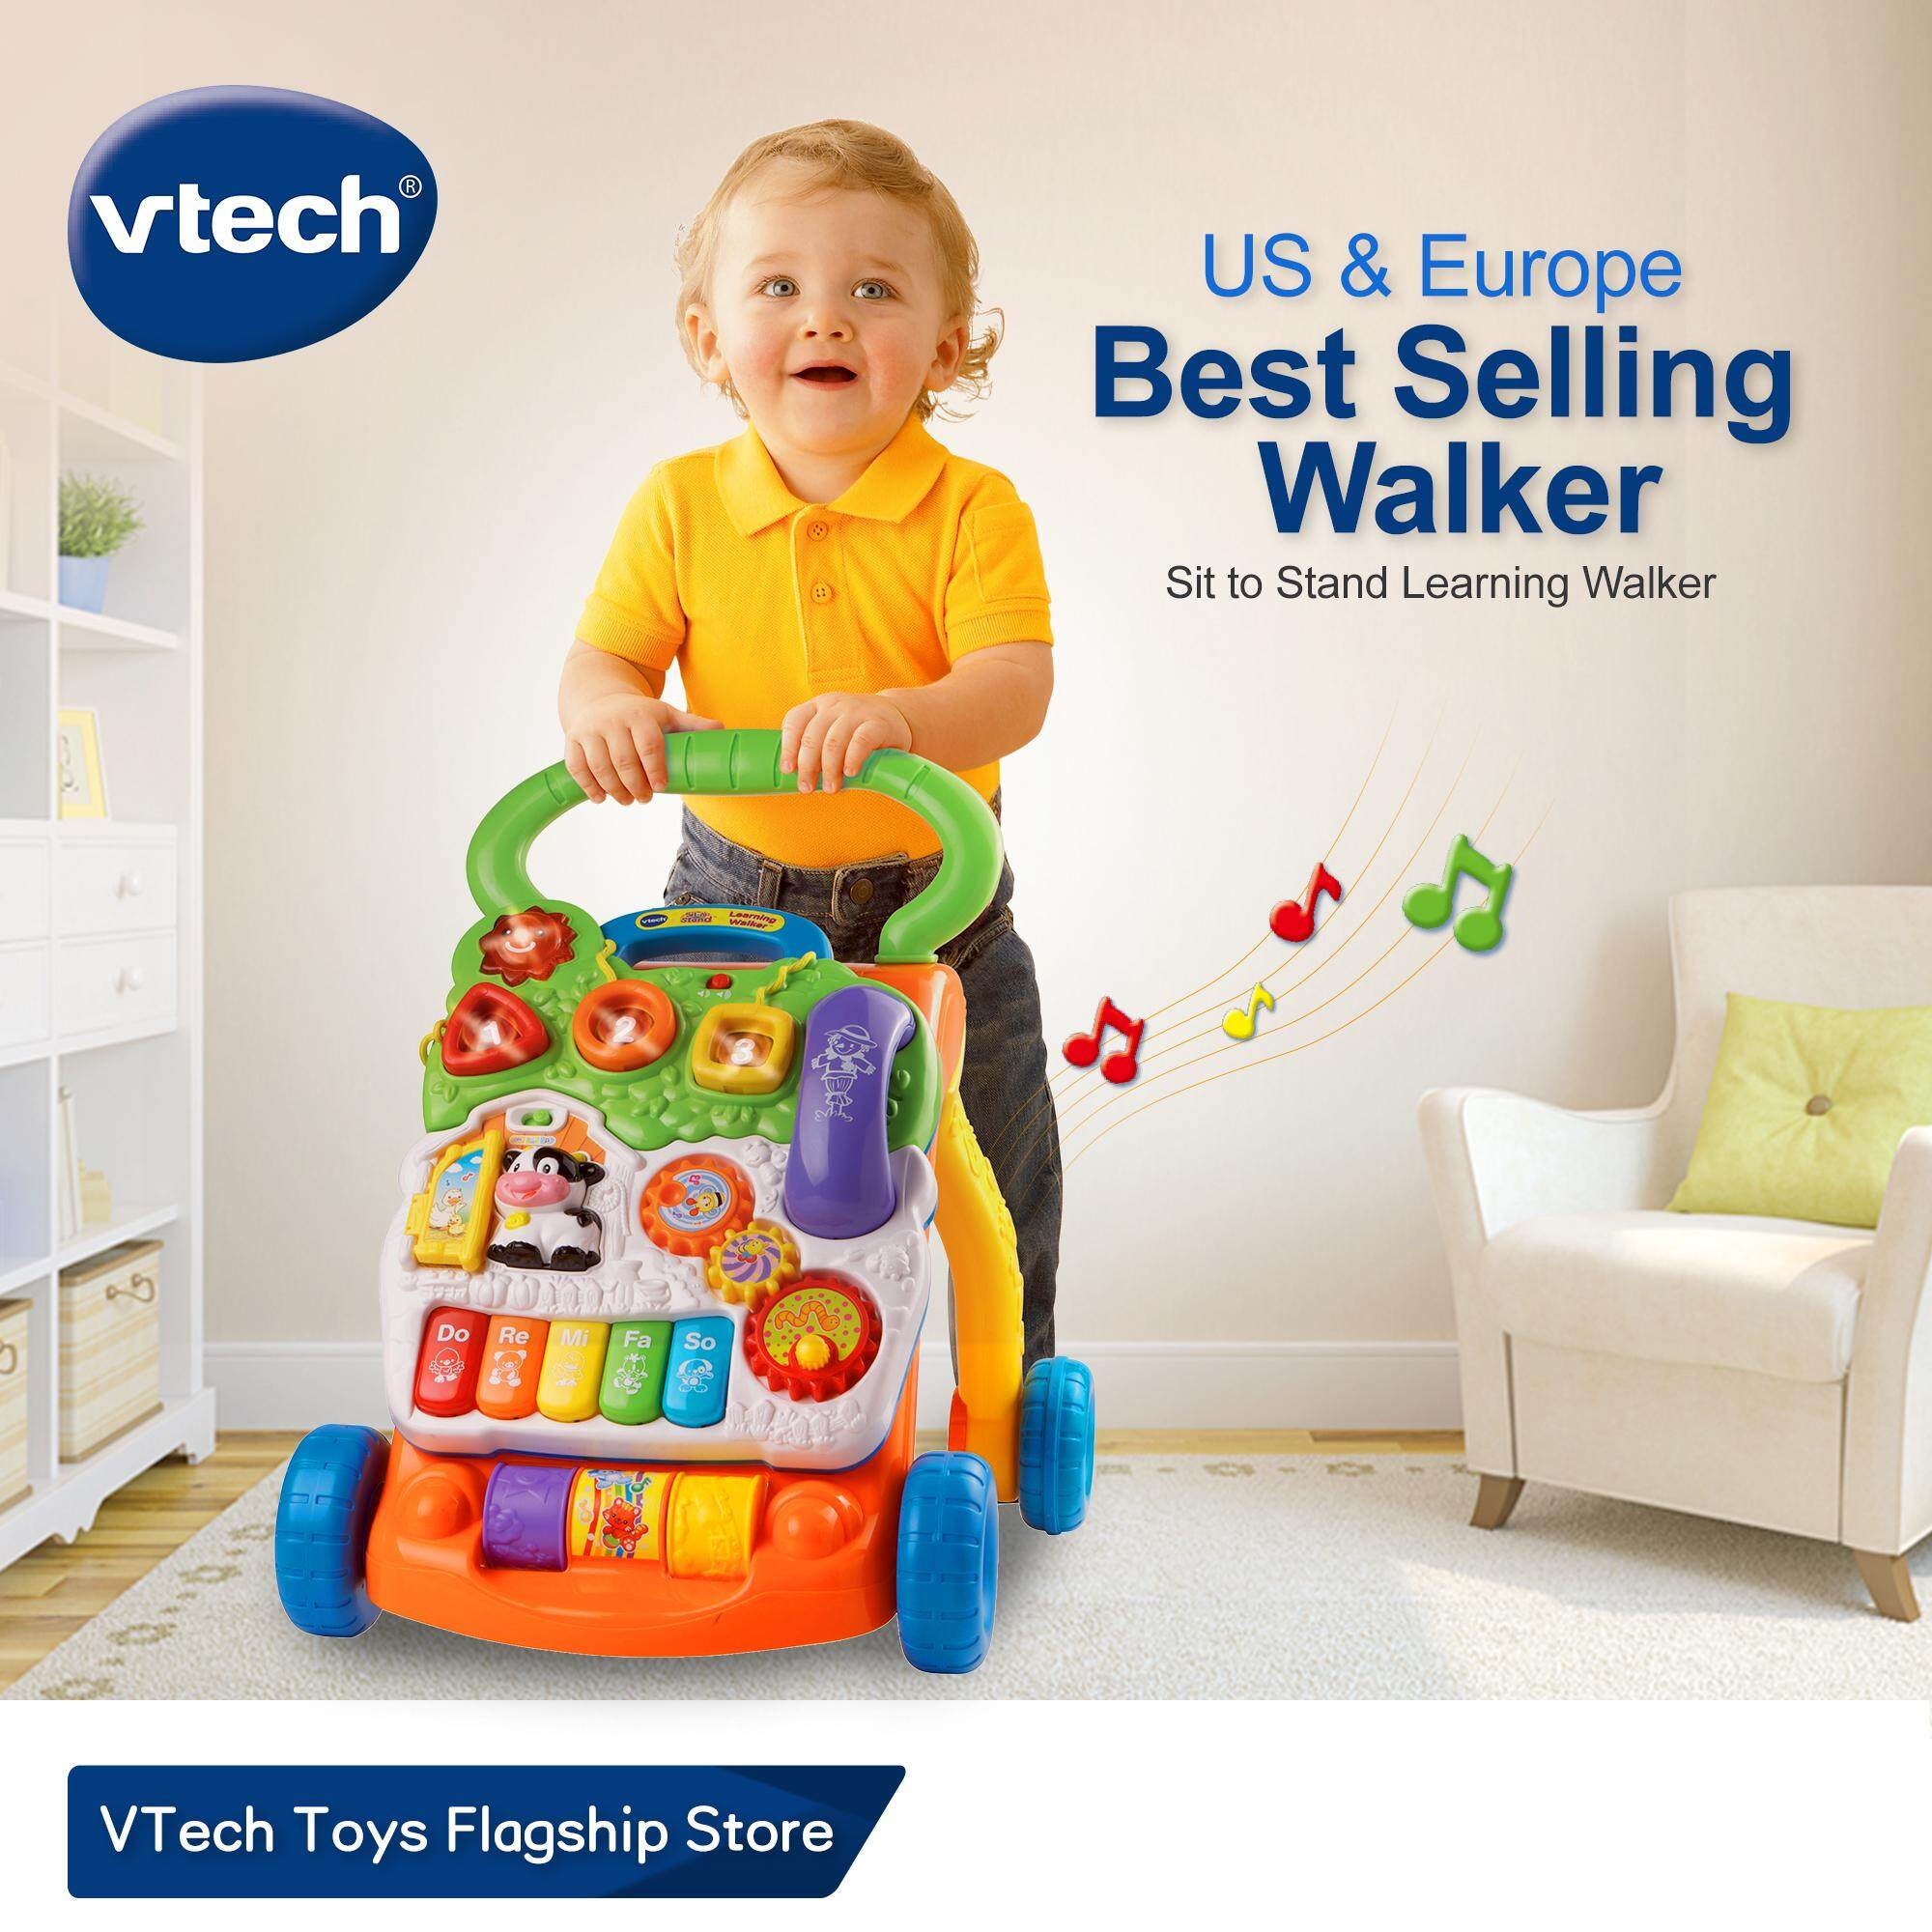 Infant Learning Chair Vtech Baby Walkerus Europe 1with Speed Control Music Educational Learning Sit To Stand Learning Walker Push Walker For Baby Infant Toys Toys